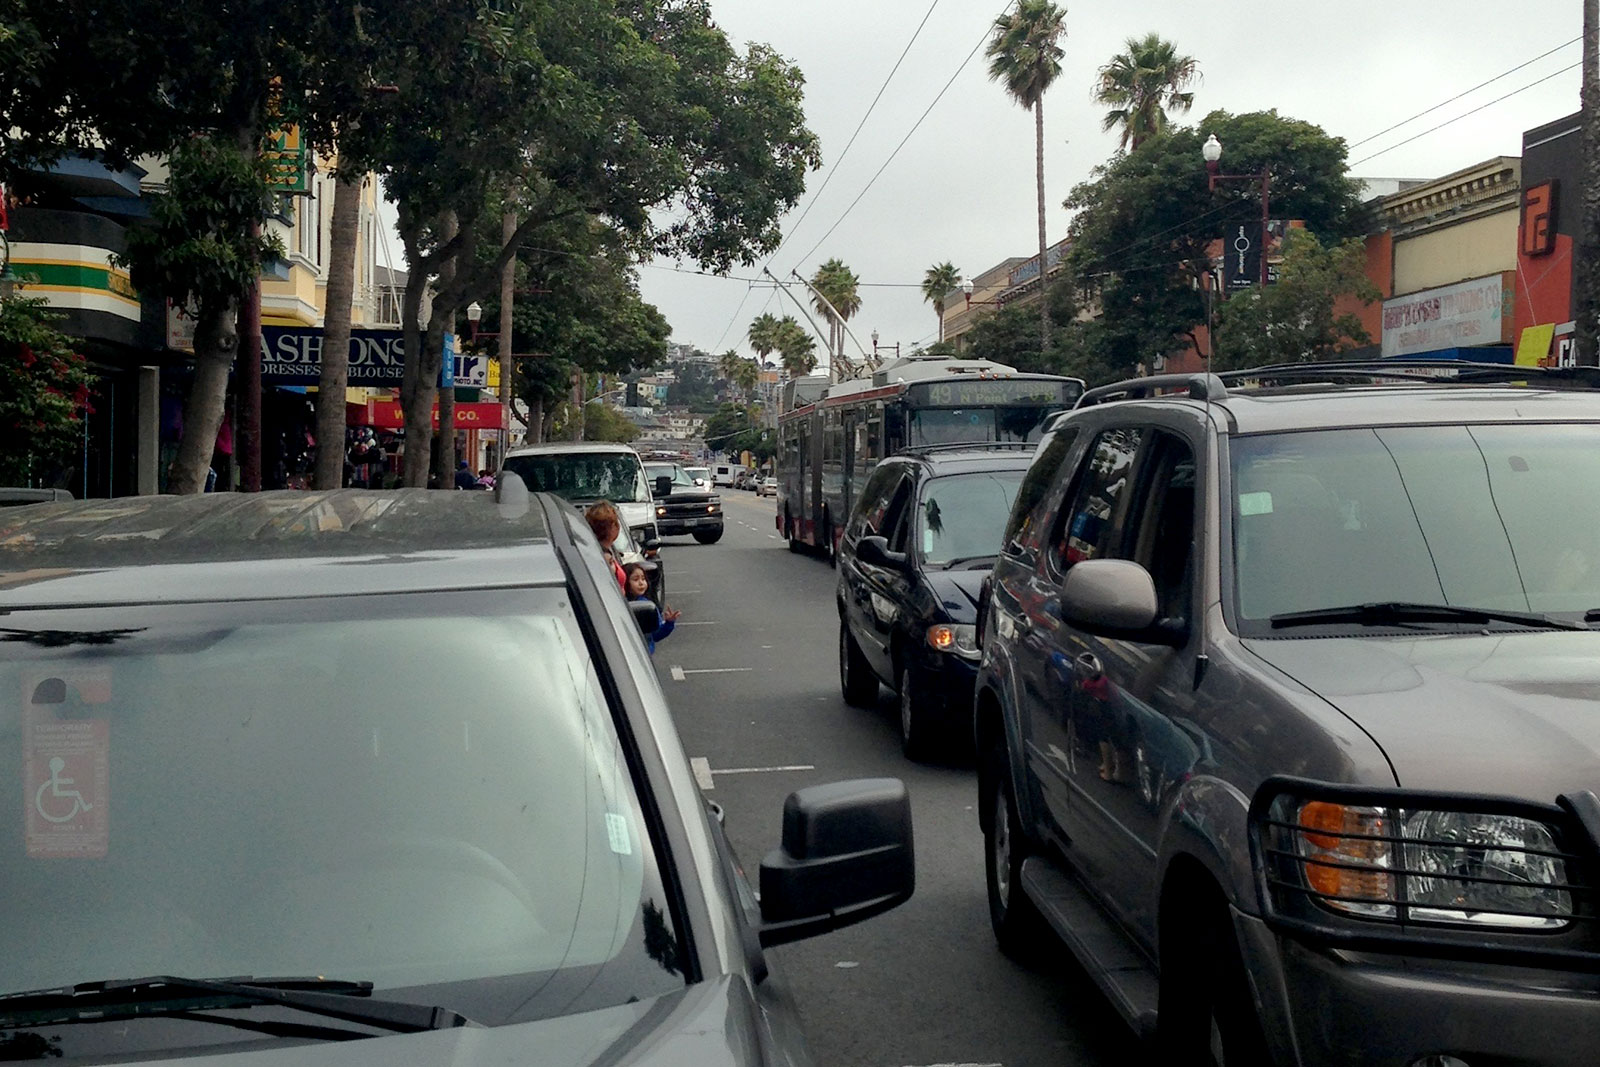 Supervisors Seek Cure for Double-Parking 'Epidemic'